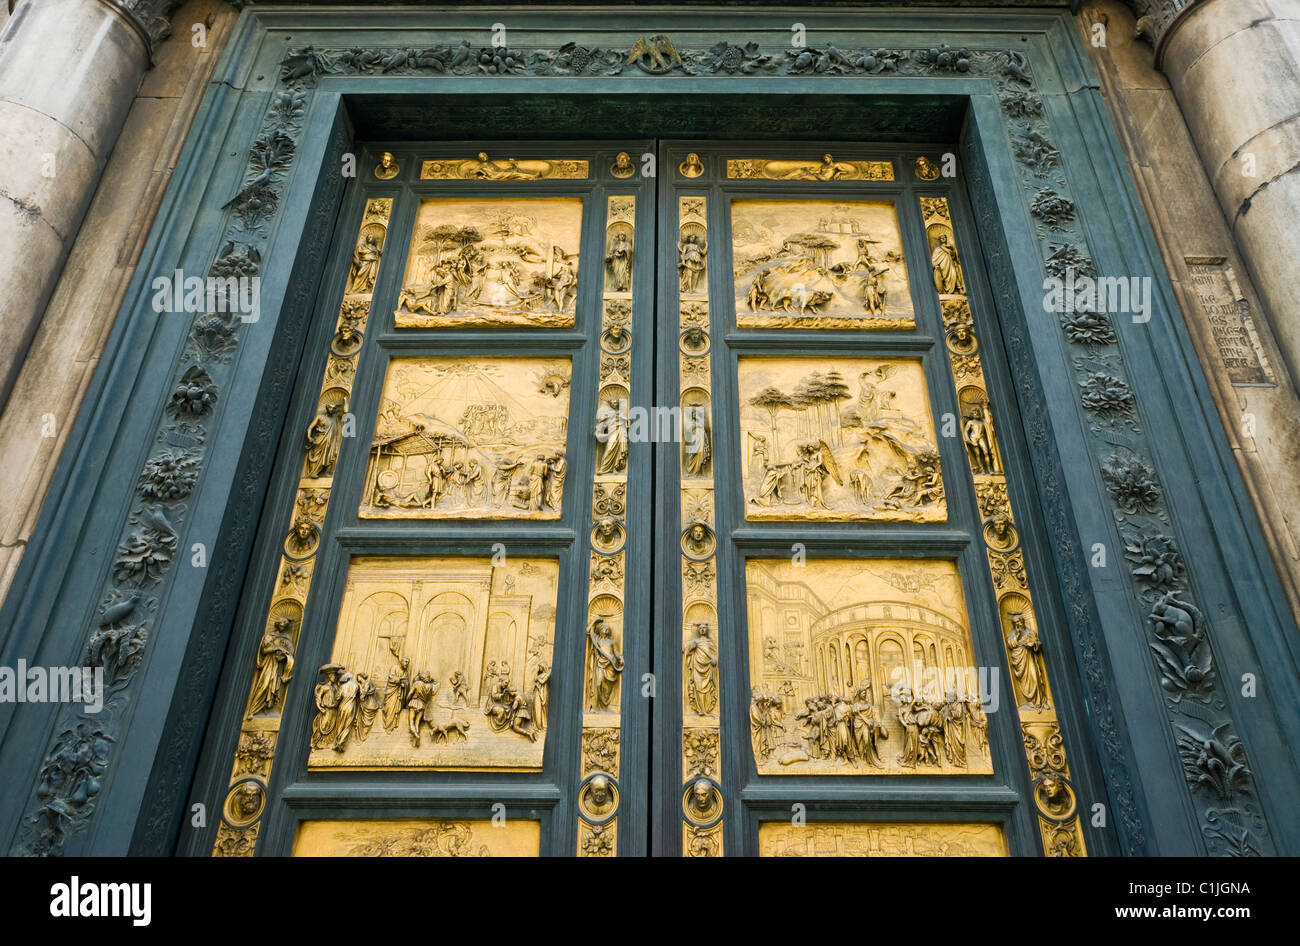 Bronze Doors Stock Photos & Bronze Doors Stock Images - Alamy